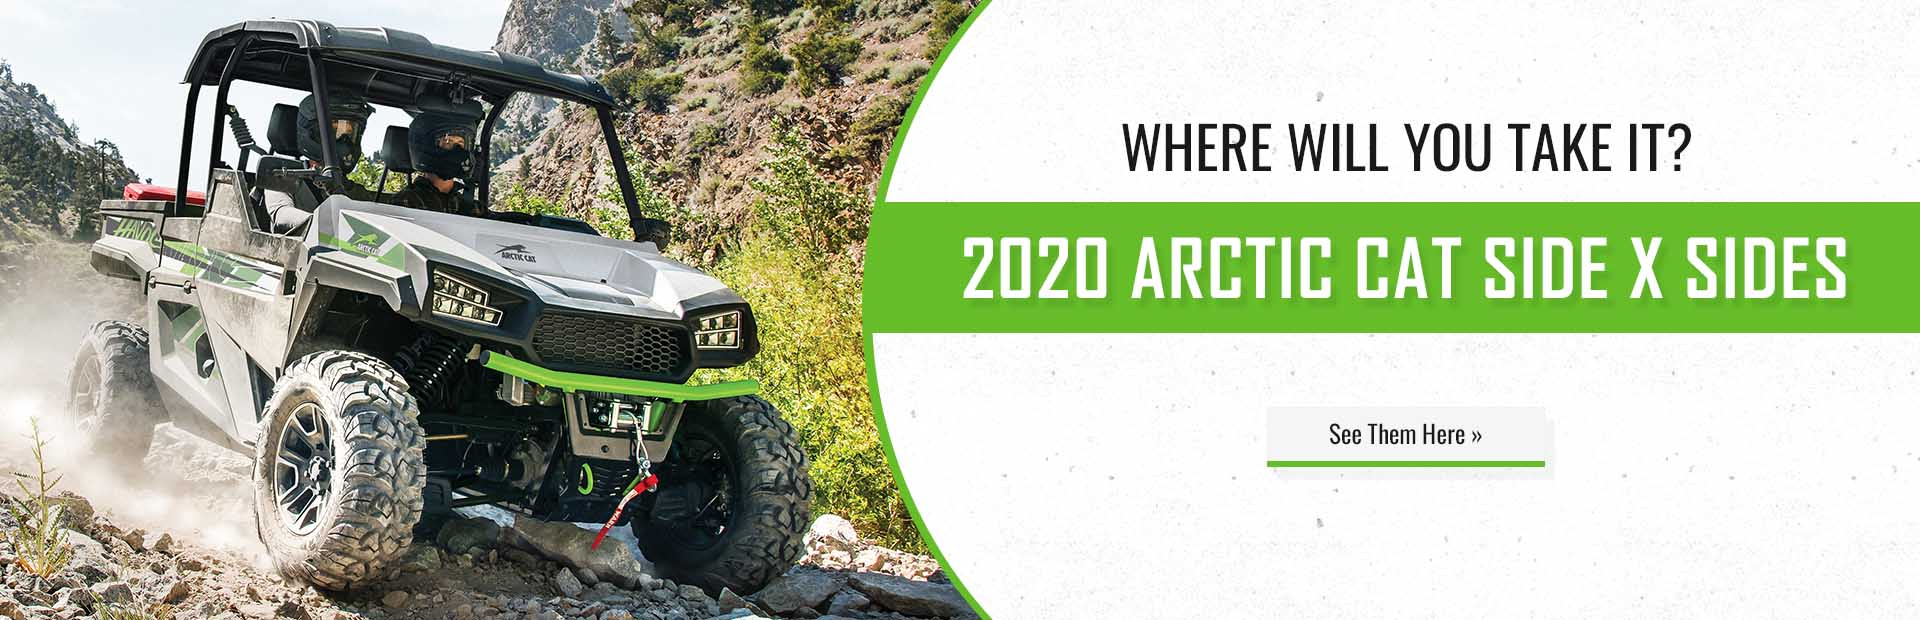 2020 Arctic Cat Side x Sides: Click here now!